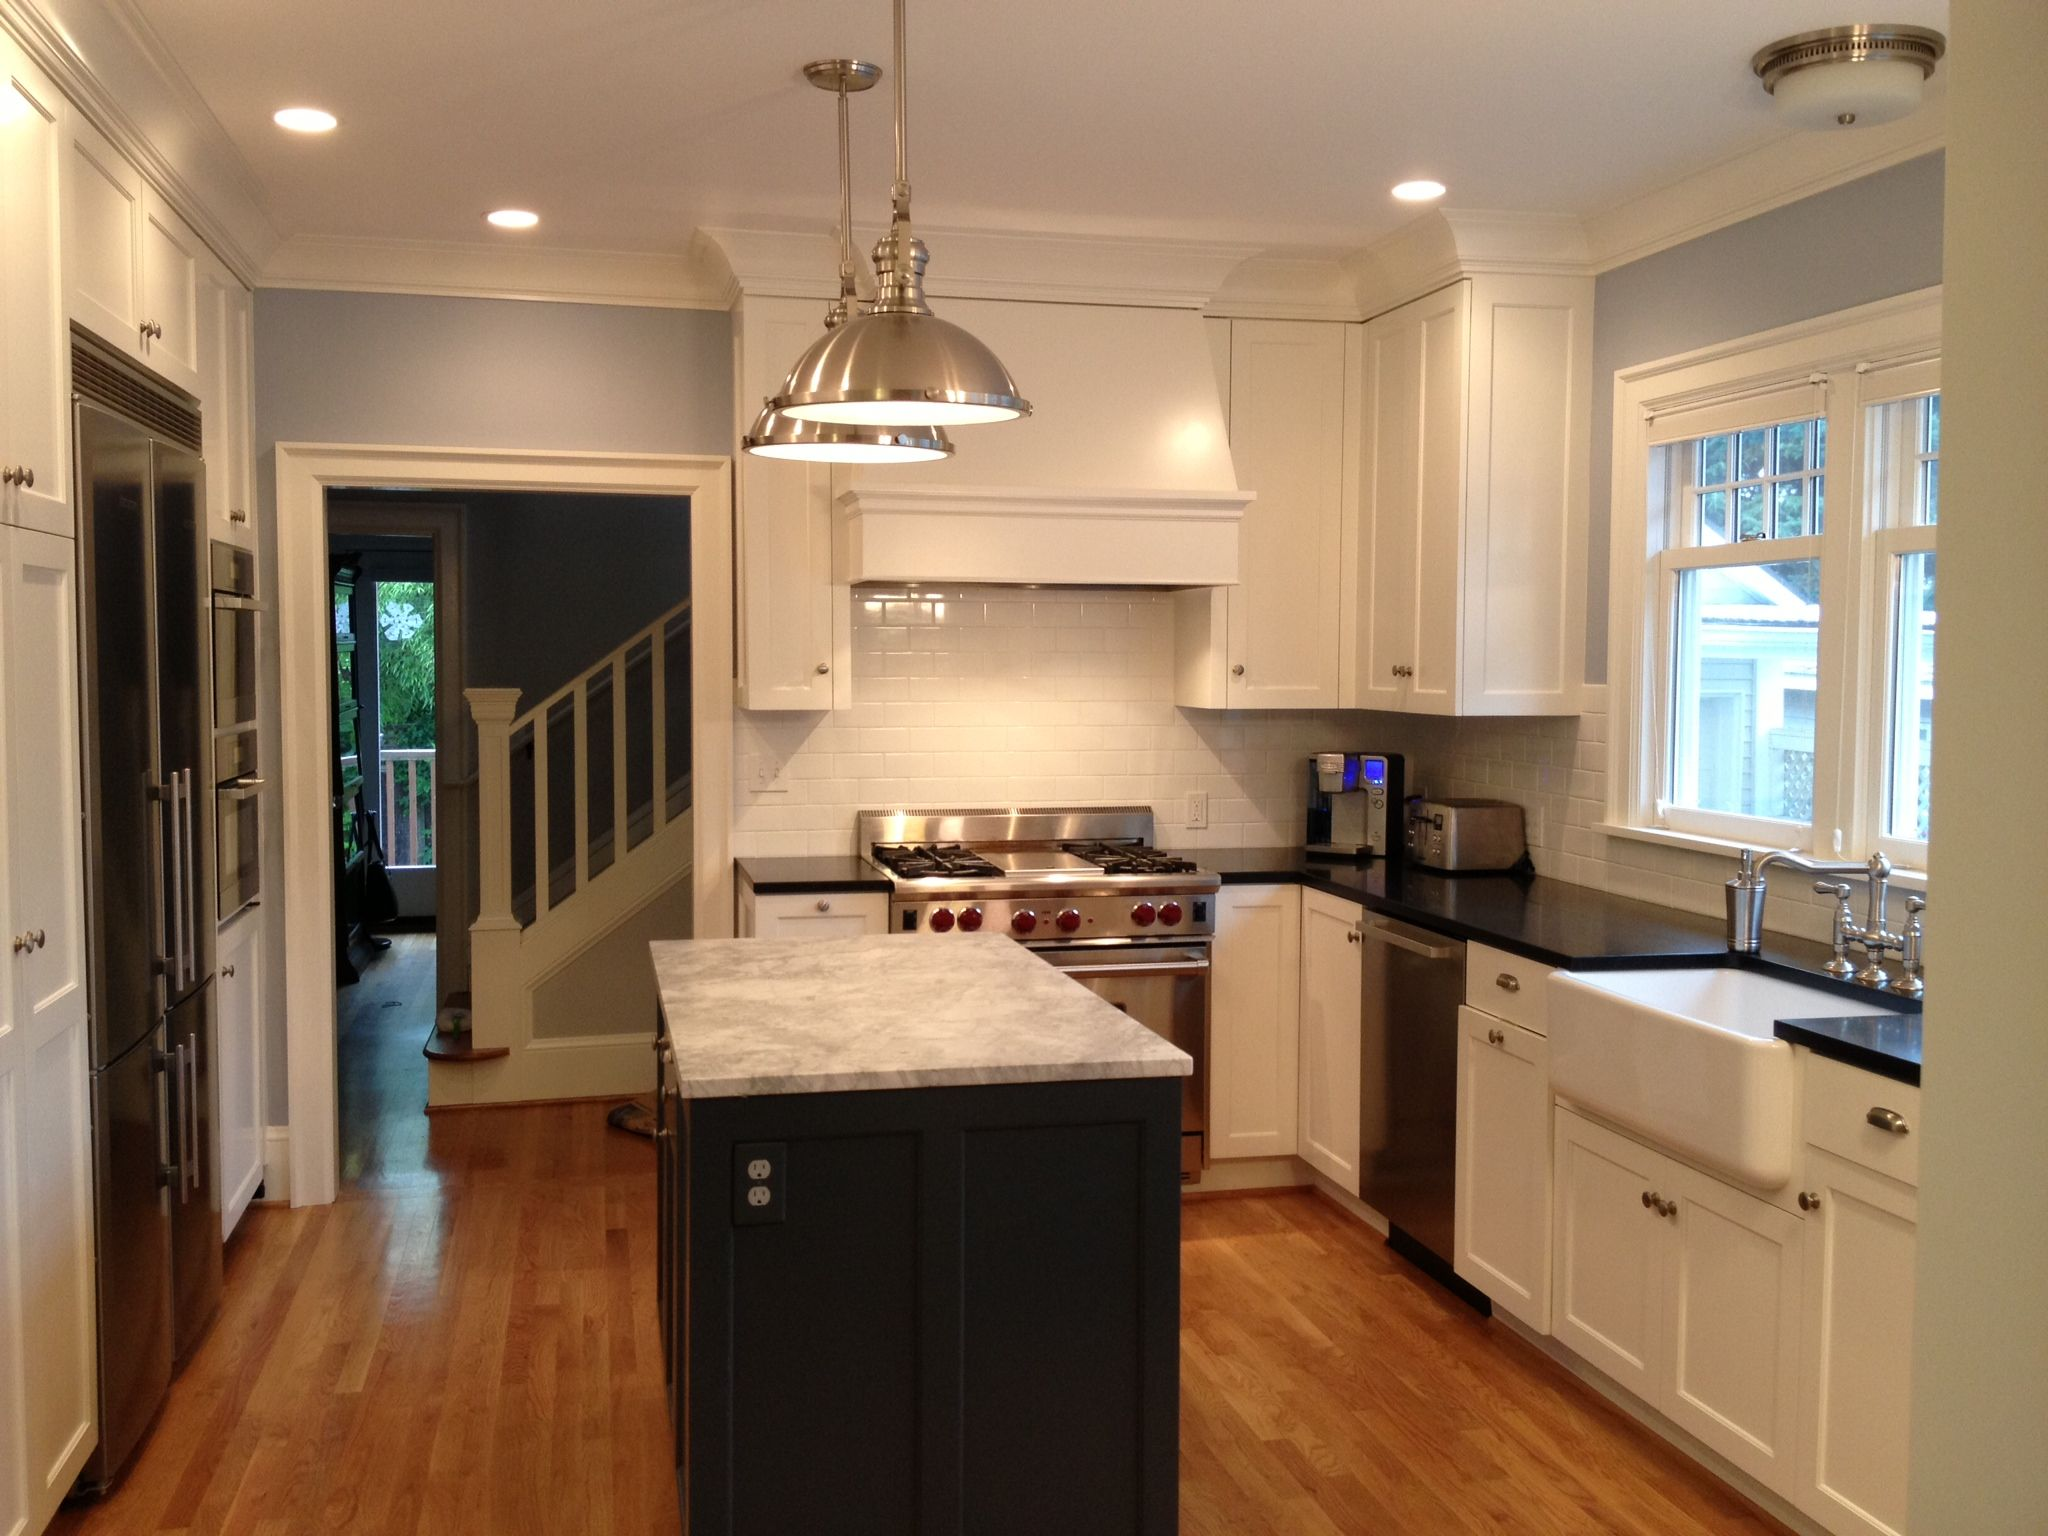 Full kitchen view in 1920 39 s home white custom cabinets for Dark kitchen cabinets light island